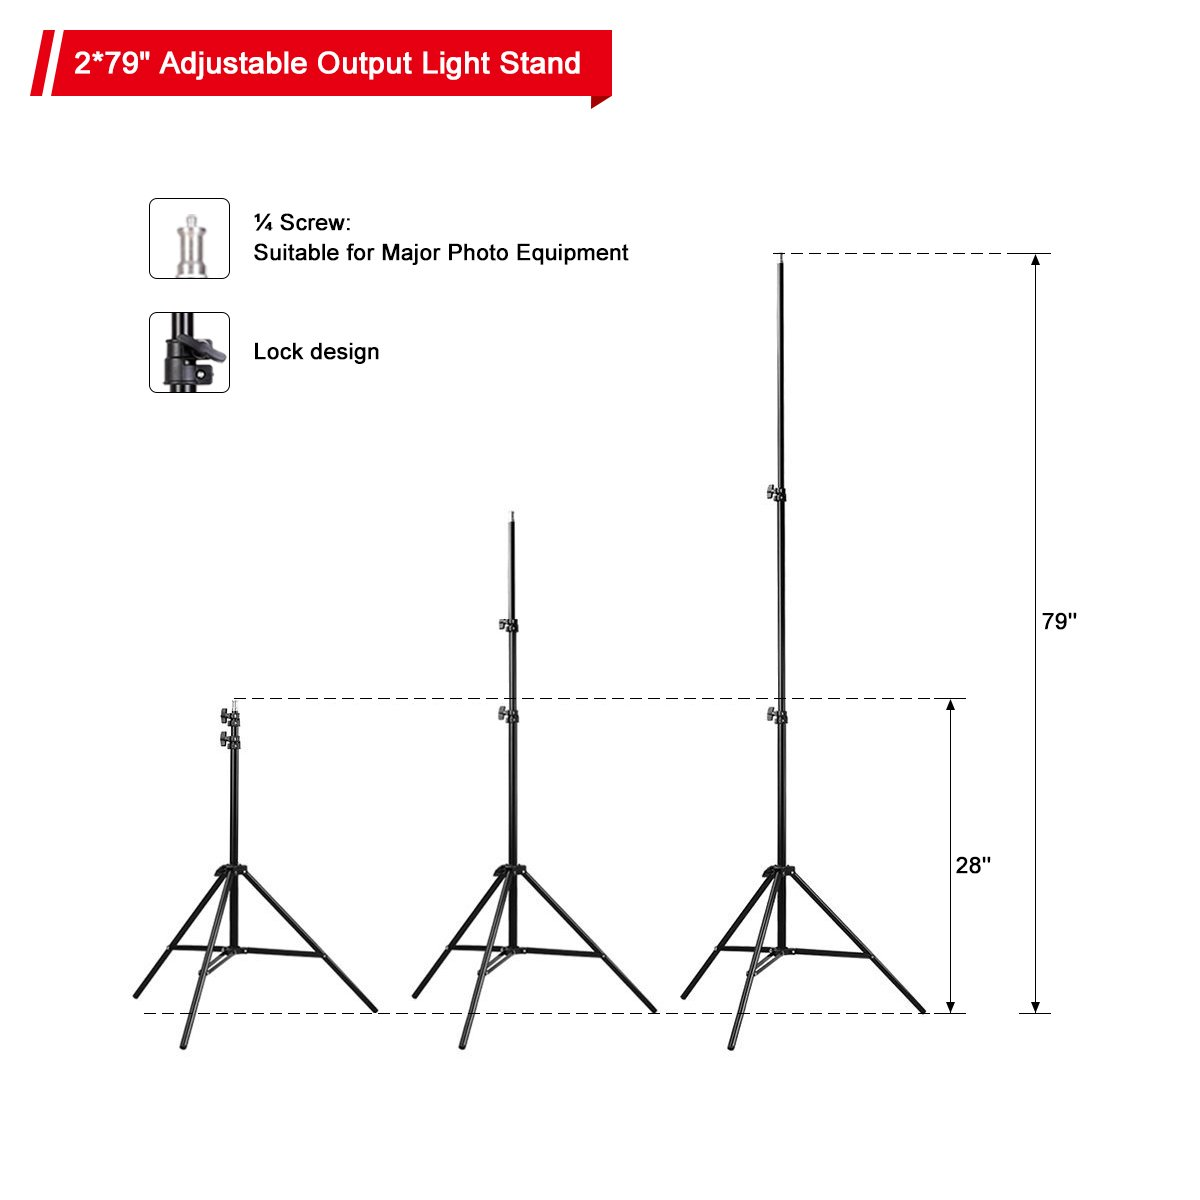 Belle Max (2)20''x28''Photography Softbox Lighting Kit Photo Studio Equipment,Including (2) 28W LED Bulbs,(1)24'' 2-in-1Reflector, Ideal for any vlog, portrait, costume and object photography by Belle Max (Image #4)